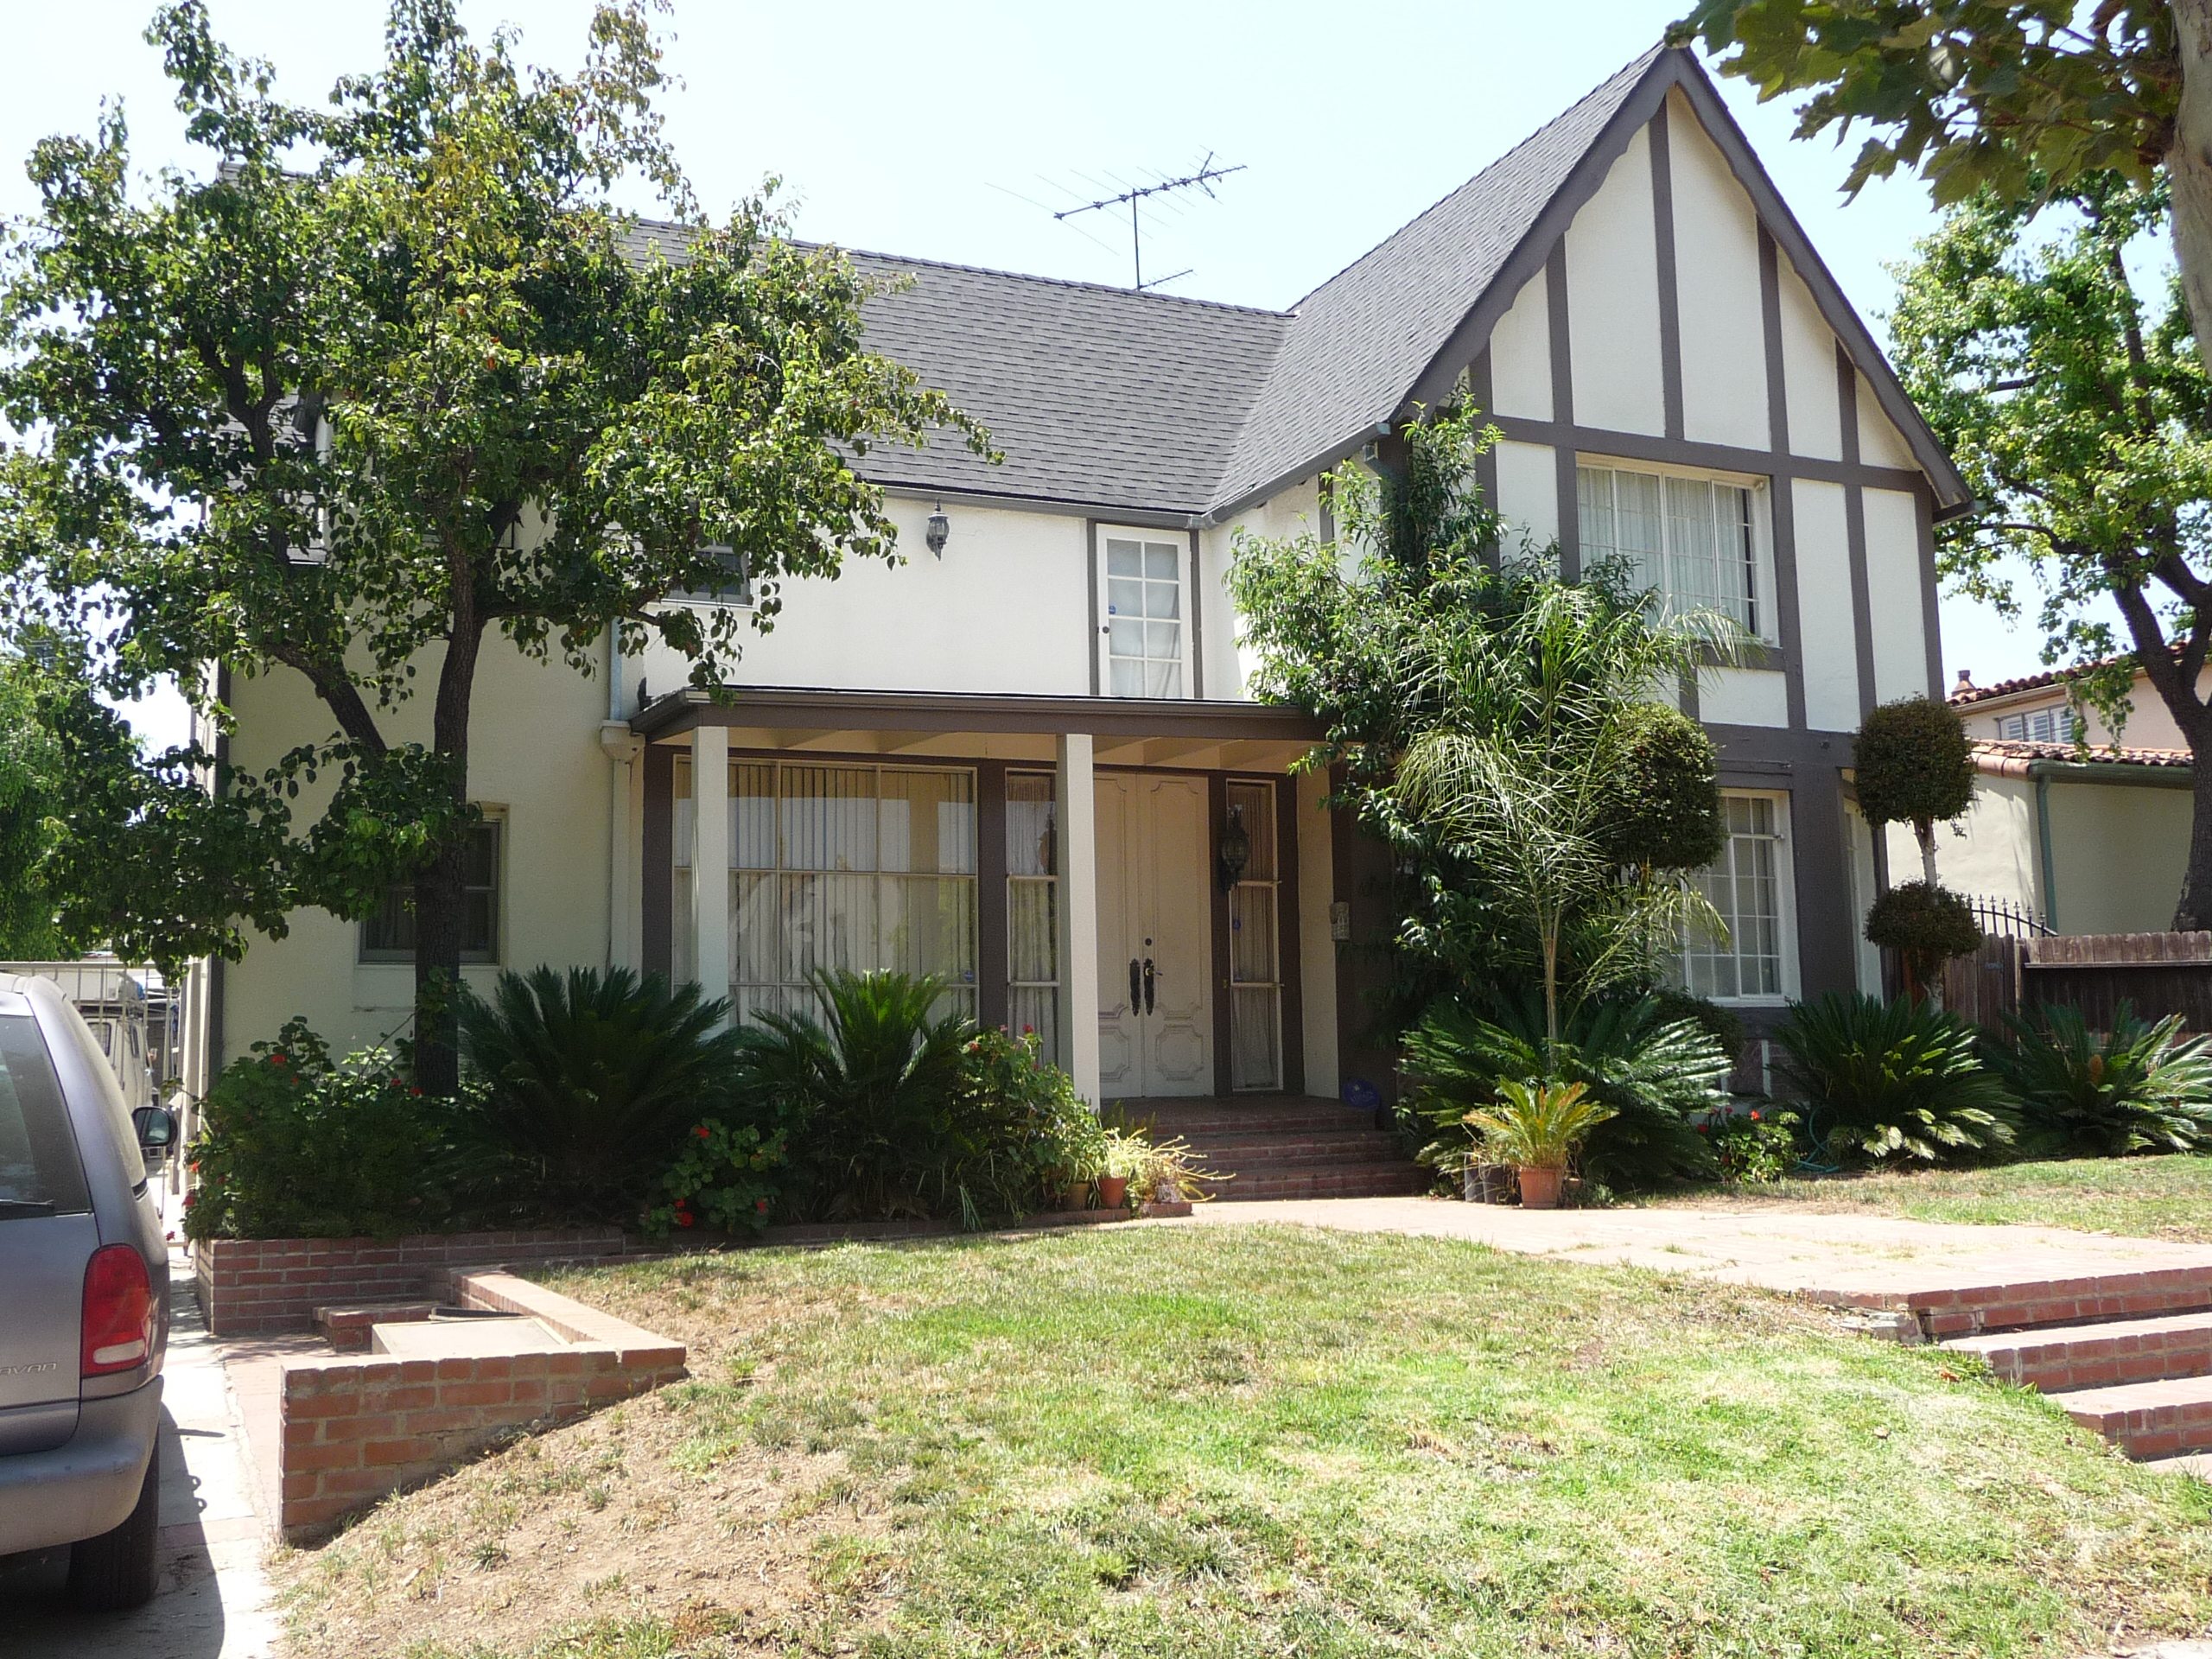 435 N MANSFIELD AVE - PHOTO